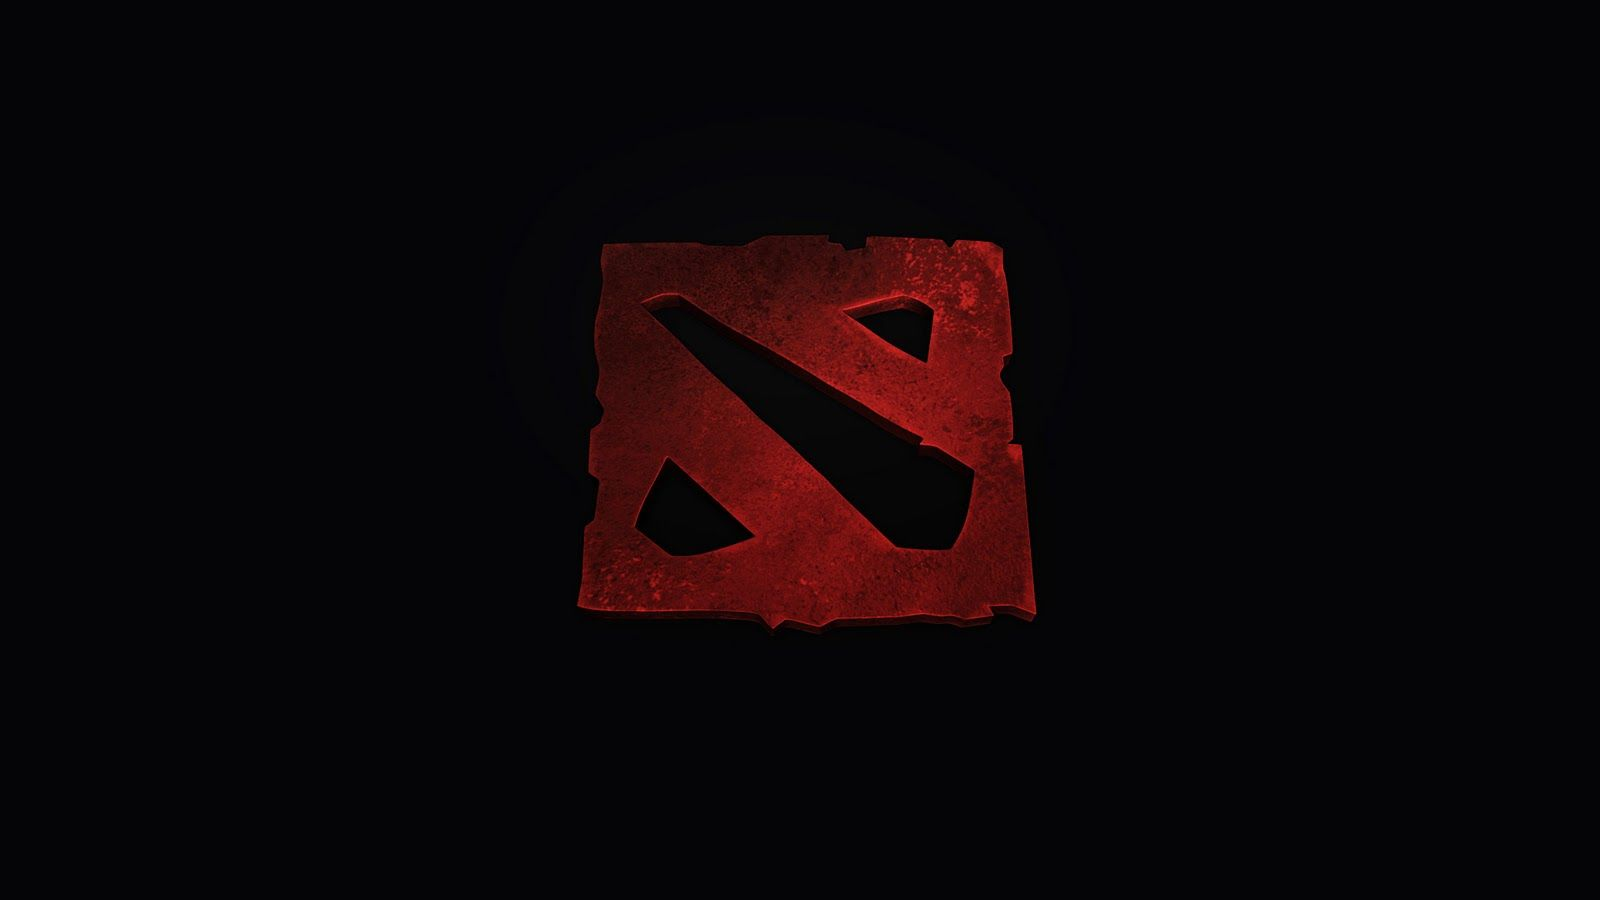 Game Wallpaper HD - Dota 2 Logo Wallpapers High Quality at ...